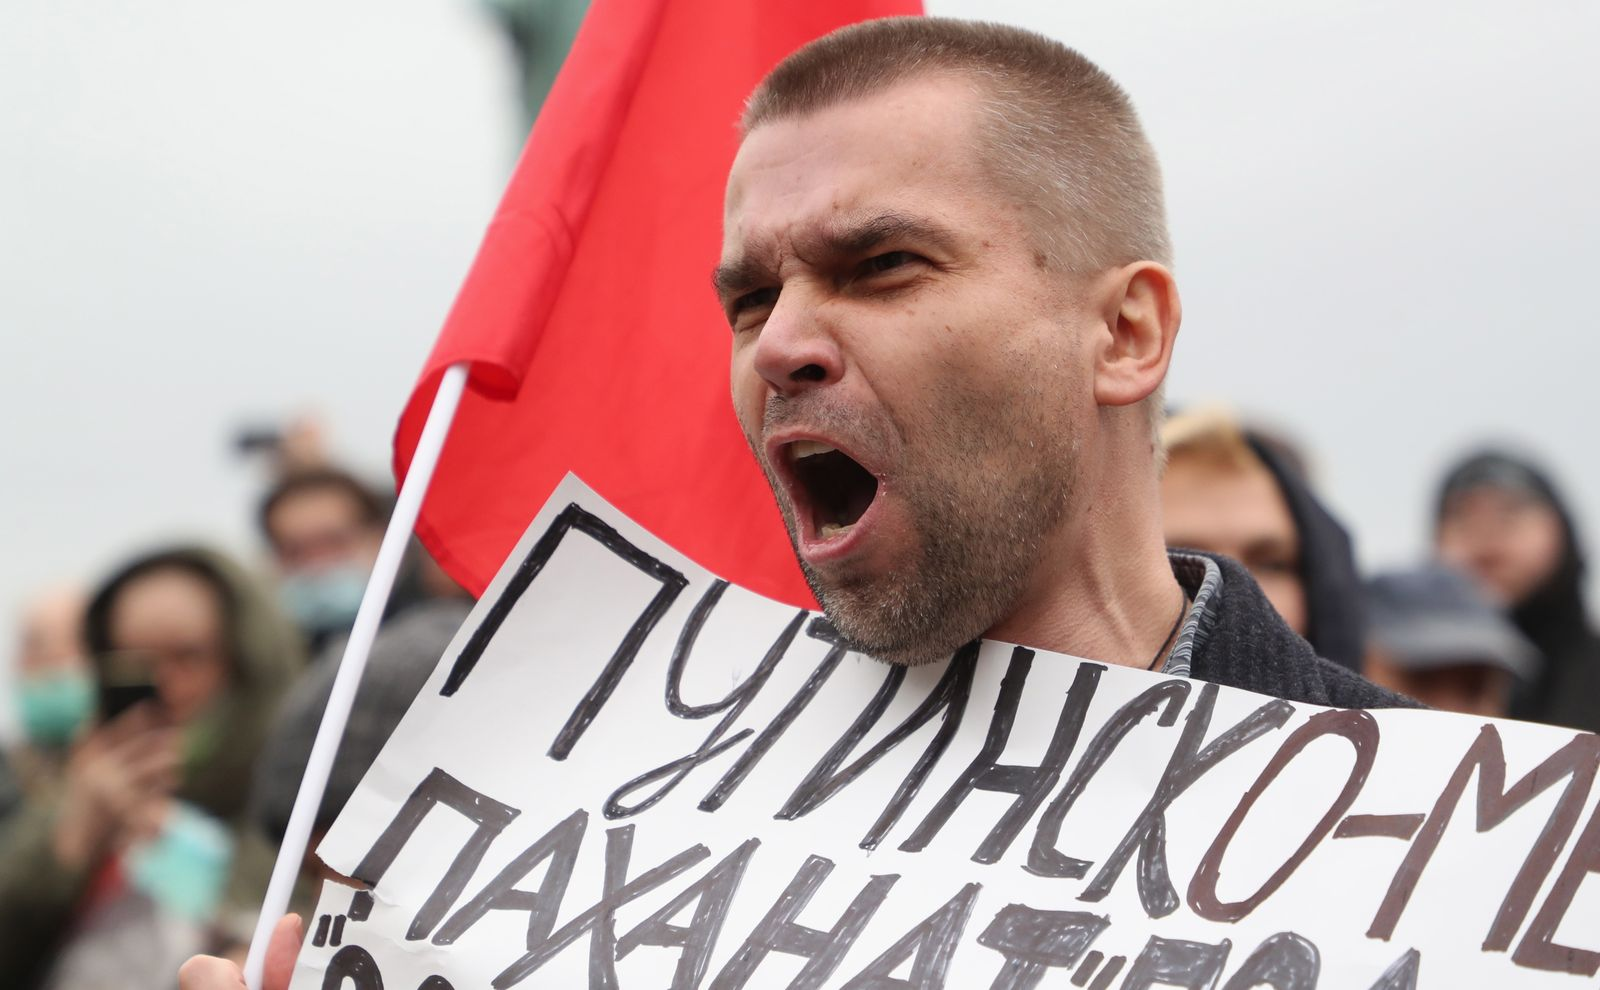 Russian Communist party supporters protest